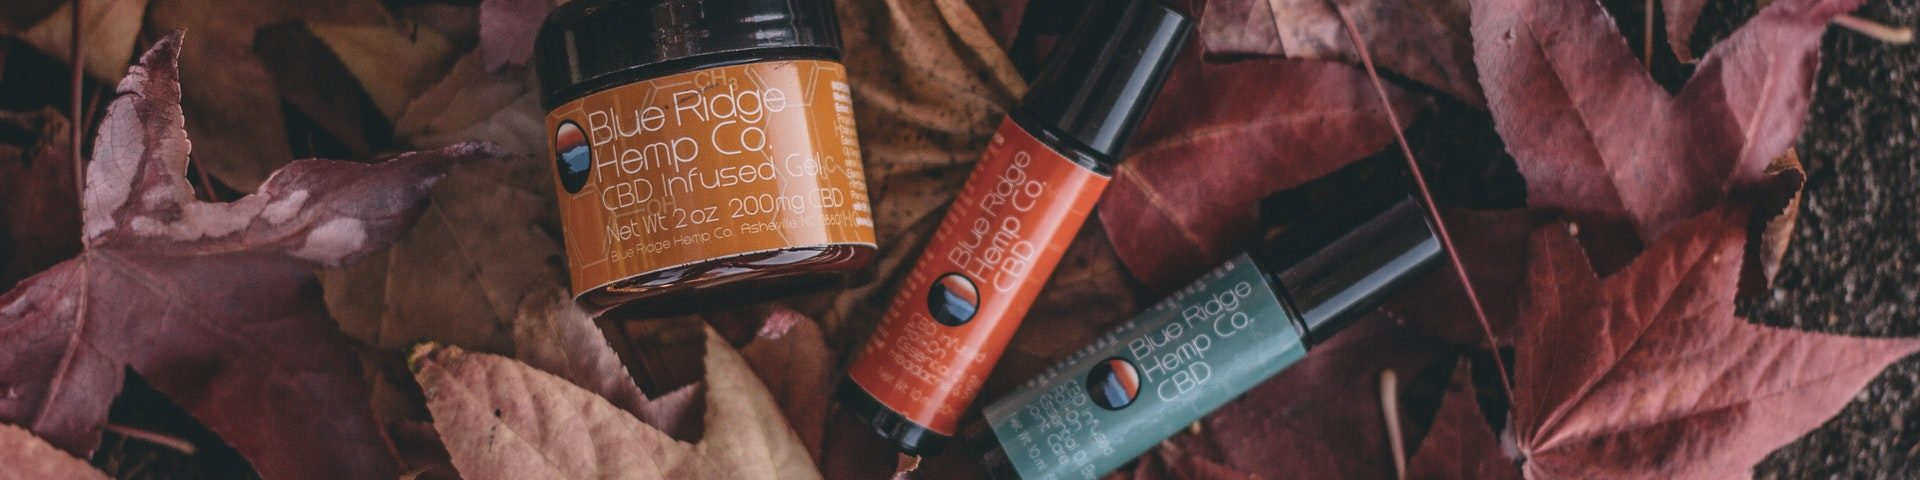 How to Use CBD Products to Make Women Feel More Confident